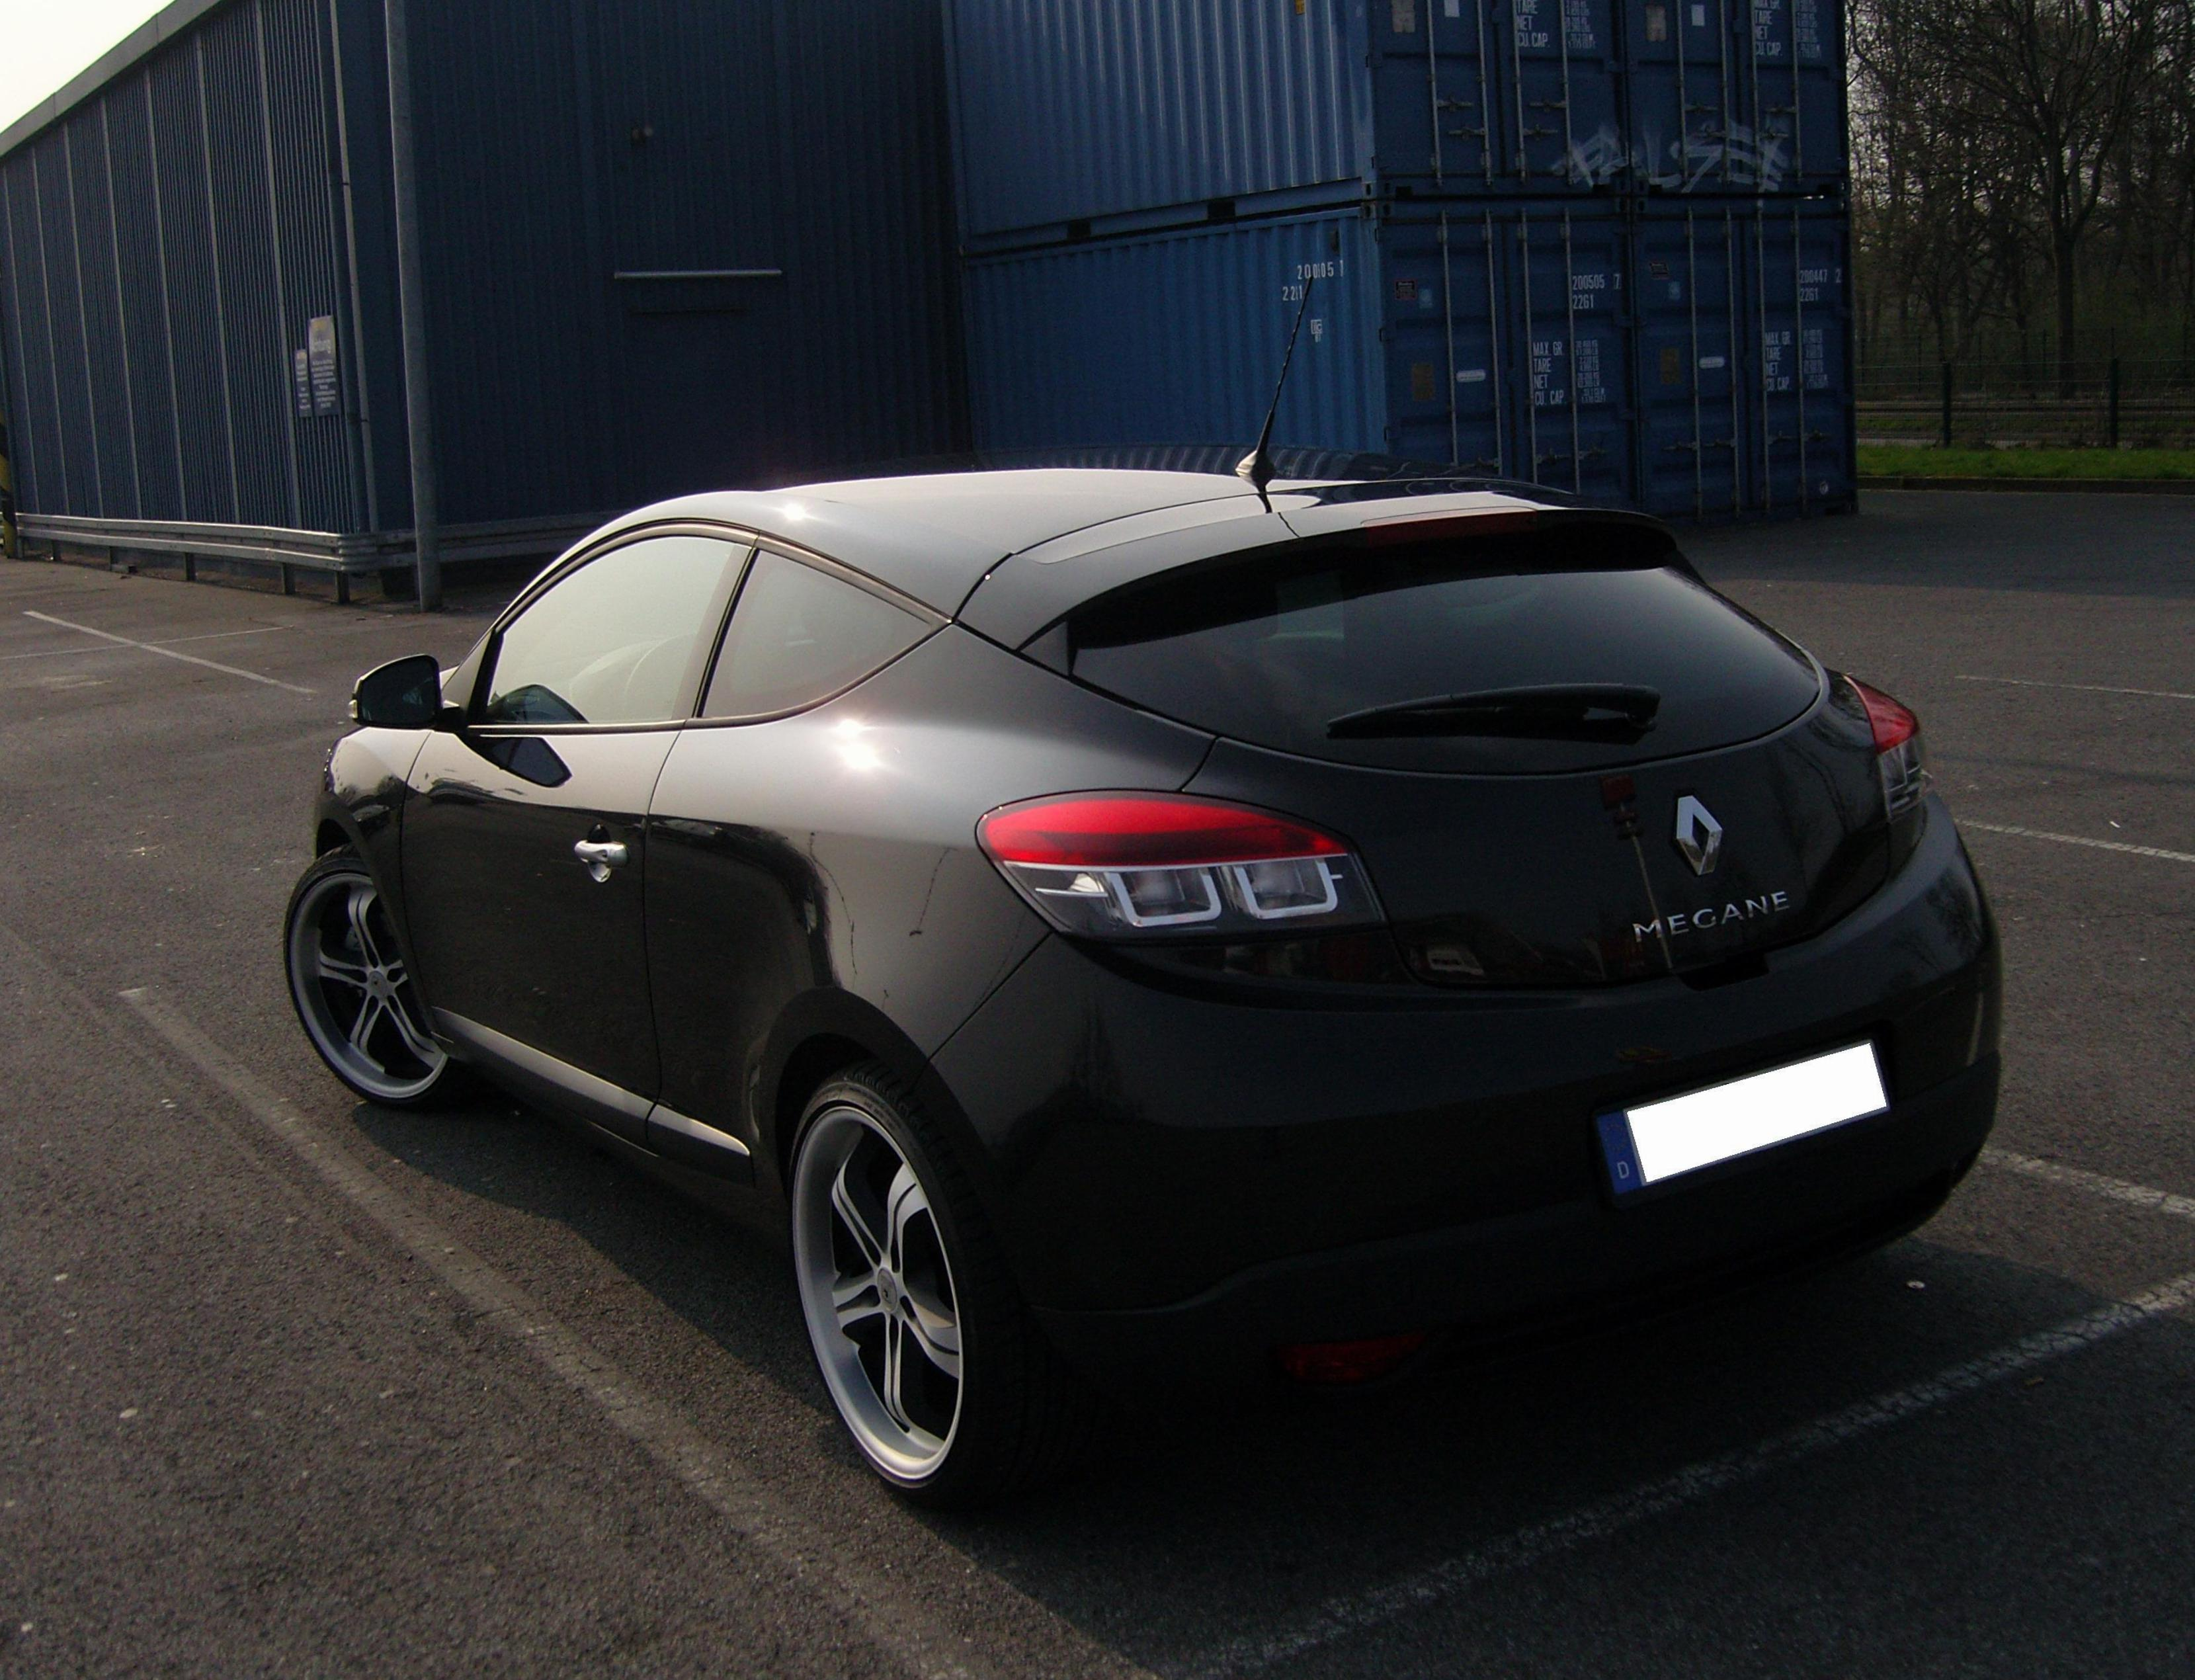 Renault Megane Coupe used 2012